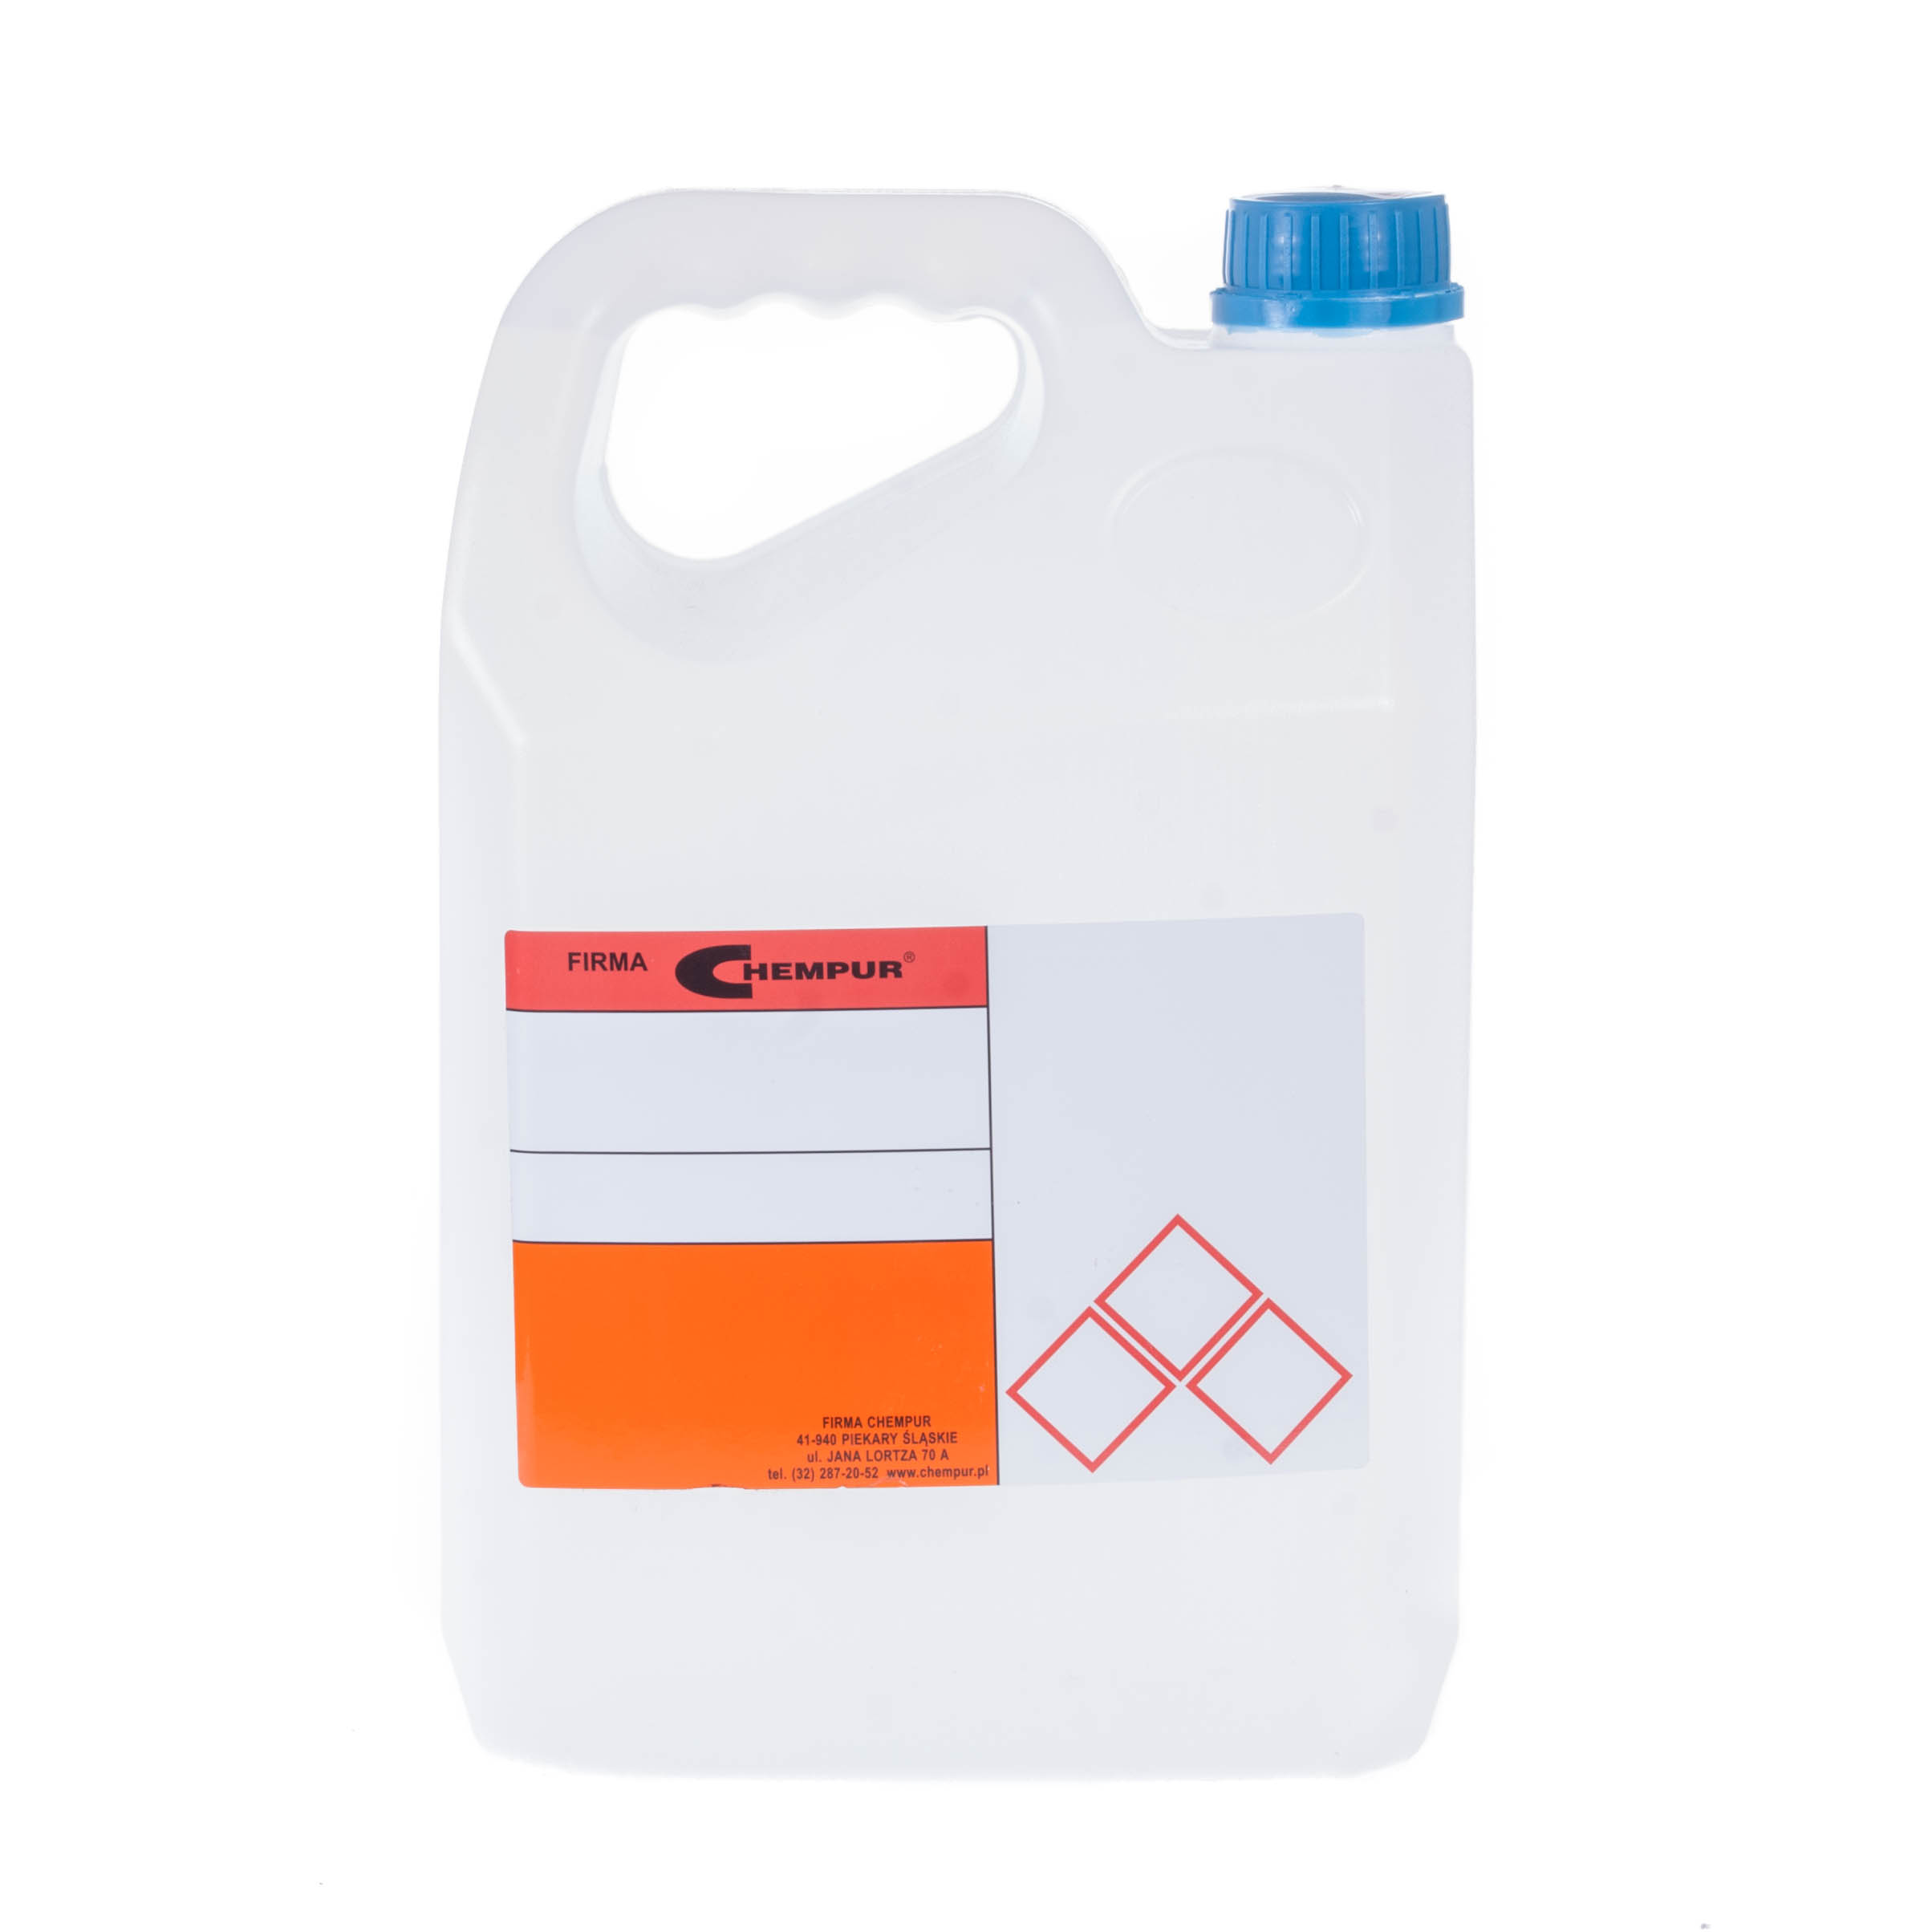 HYDROFLUORIC ACID SOLUTION 40%